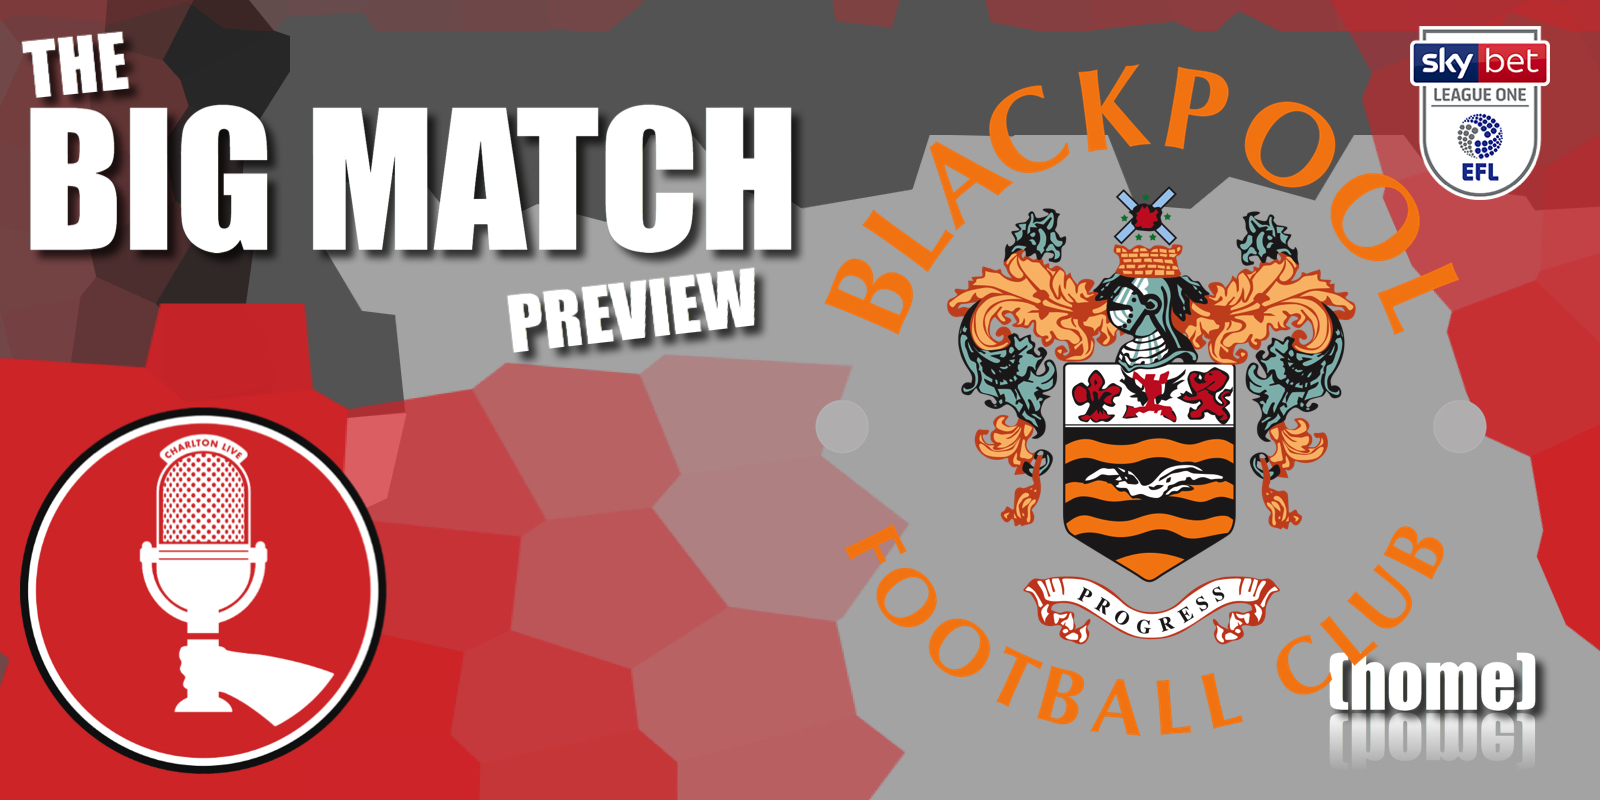 Big Match Preview – Blackpool at home 2020-21